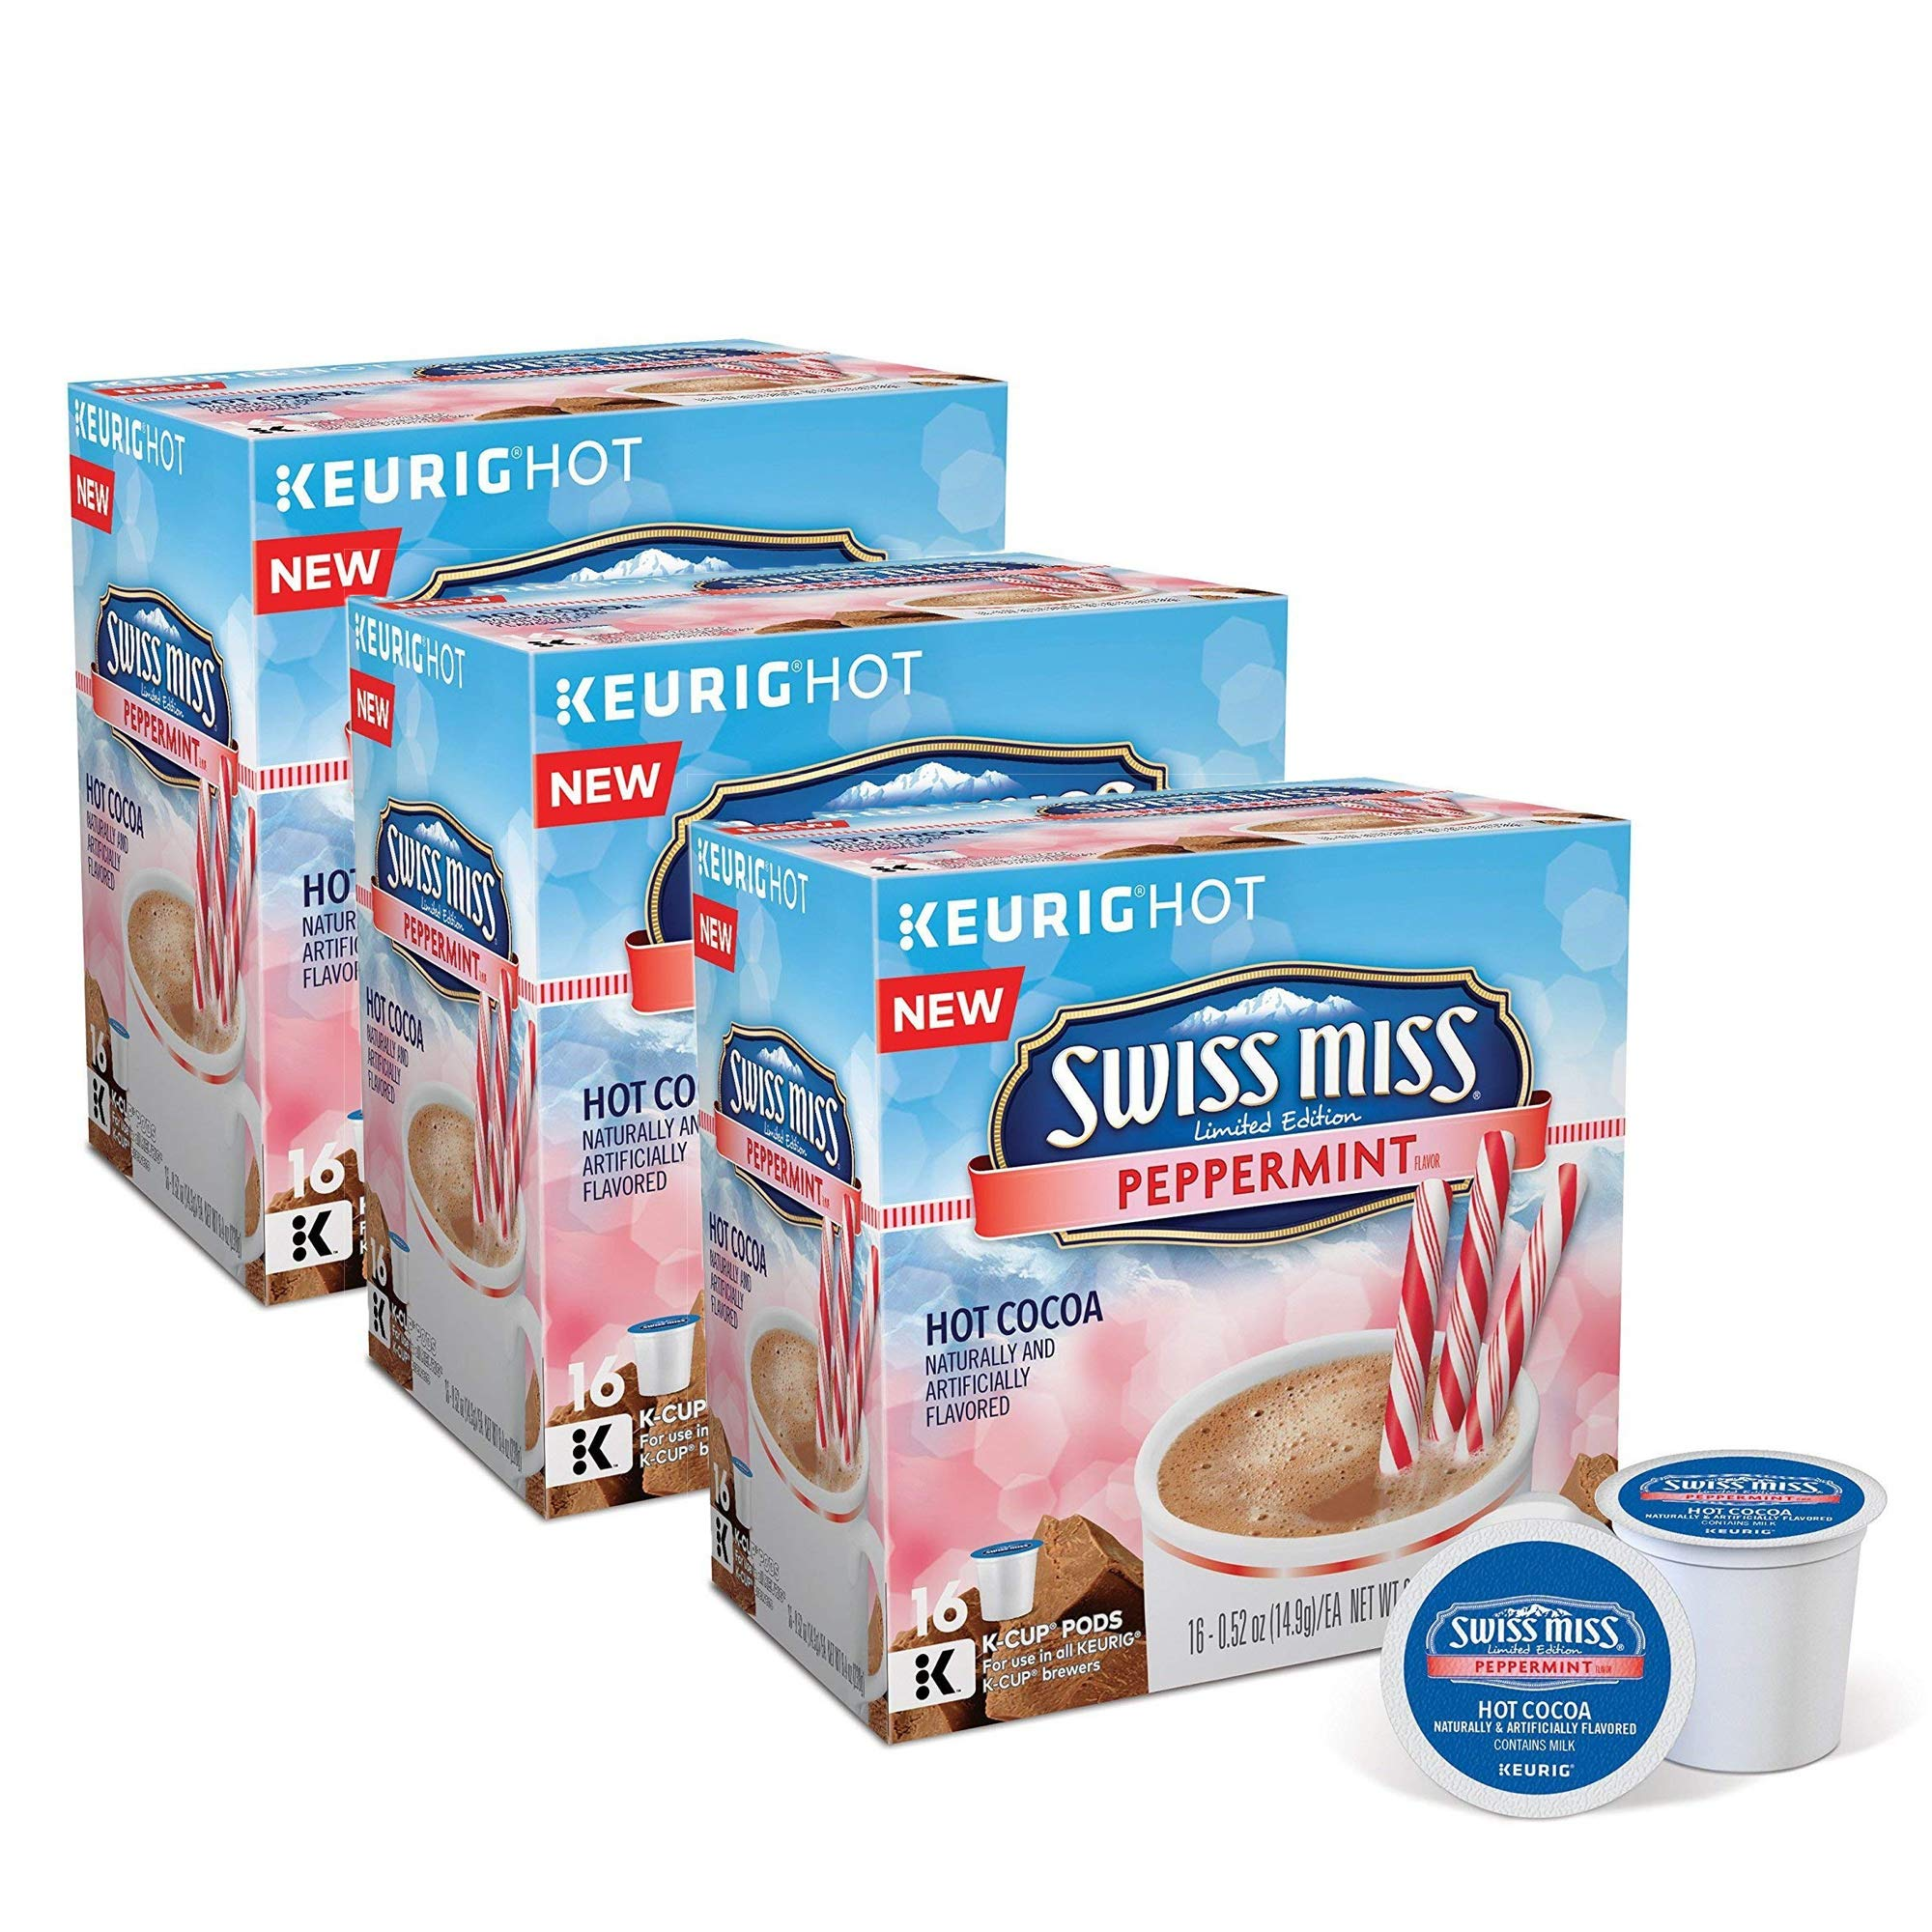 Swiss Miss Peppermint Chocolate Hot Cocoa, Keurig K-Cups, 16 Count (pack of 3)